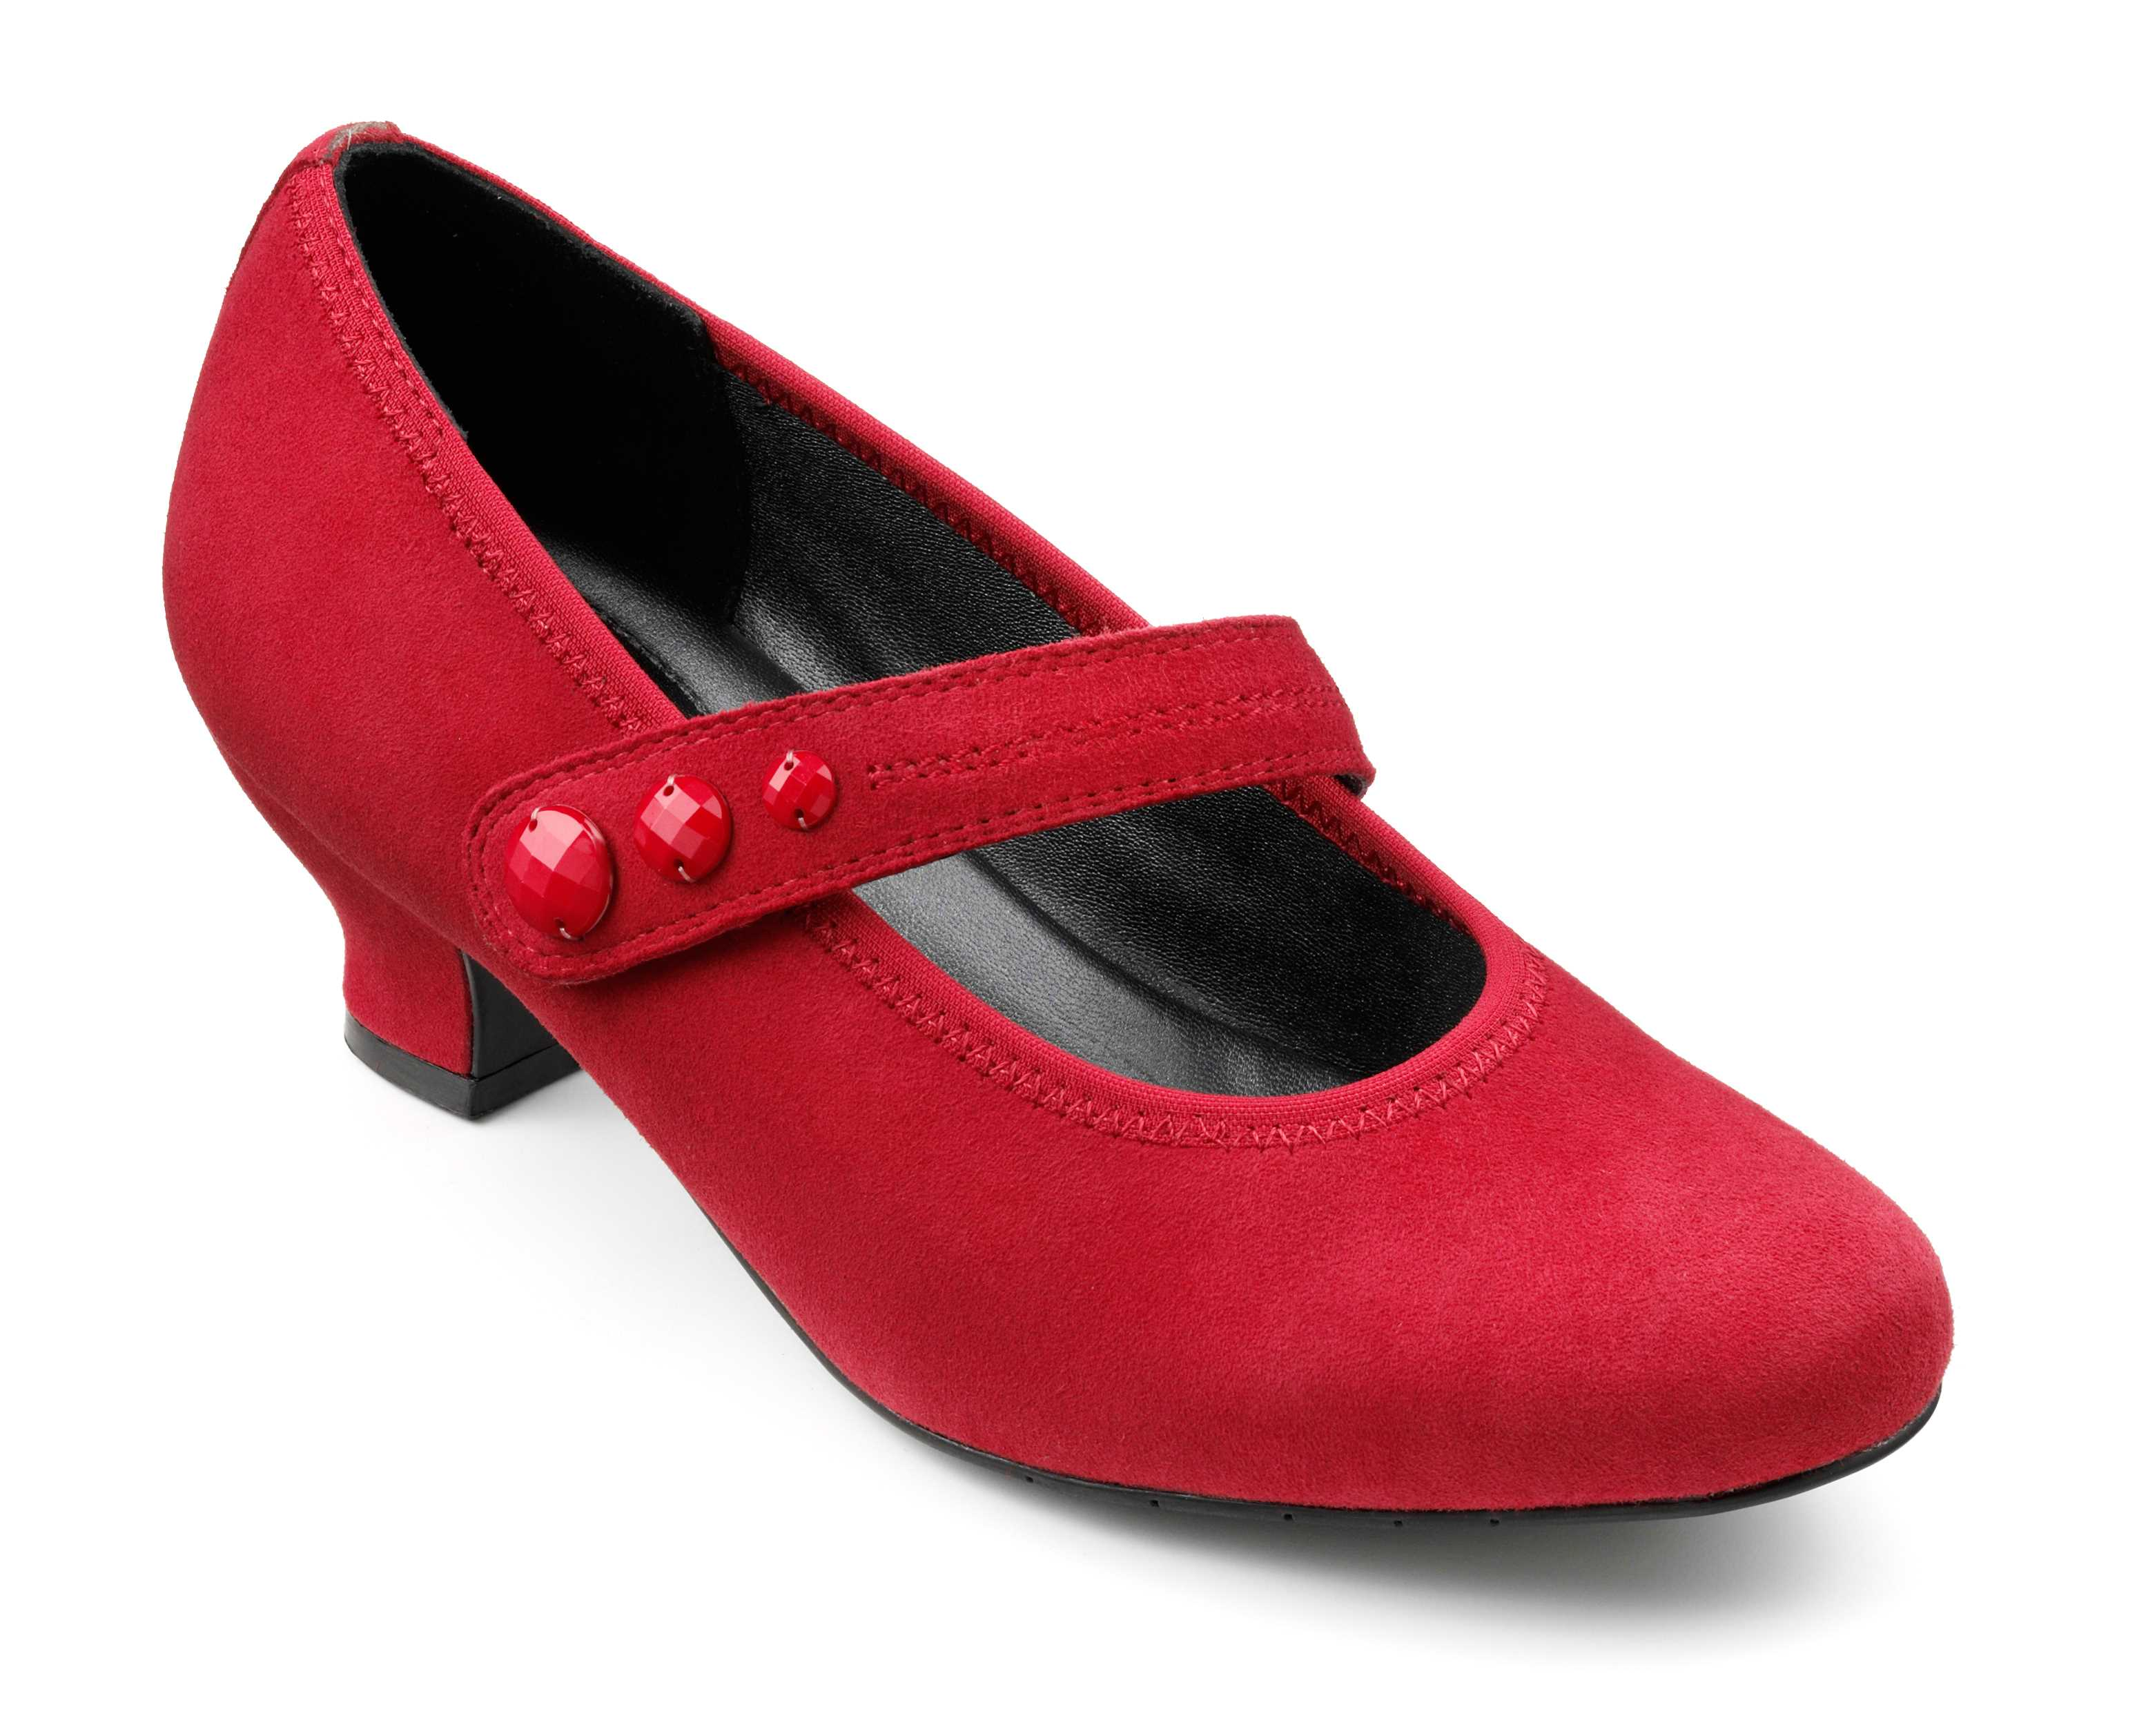 Women's heel Charmaine in Red